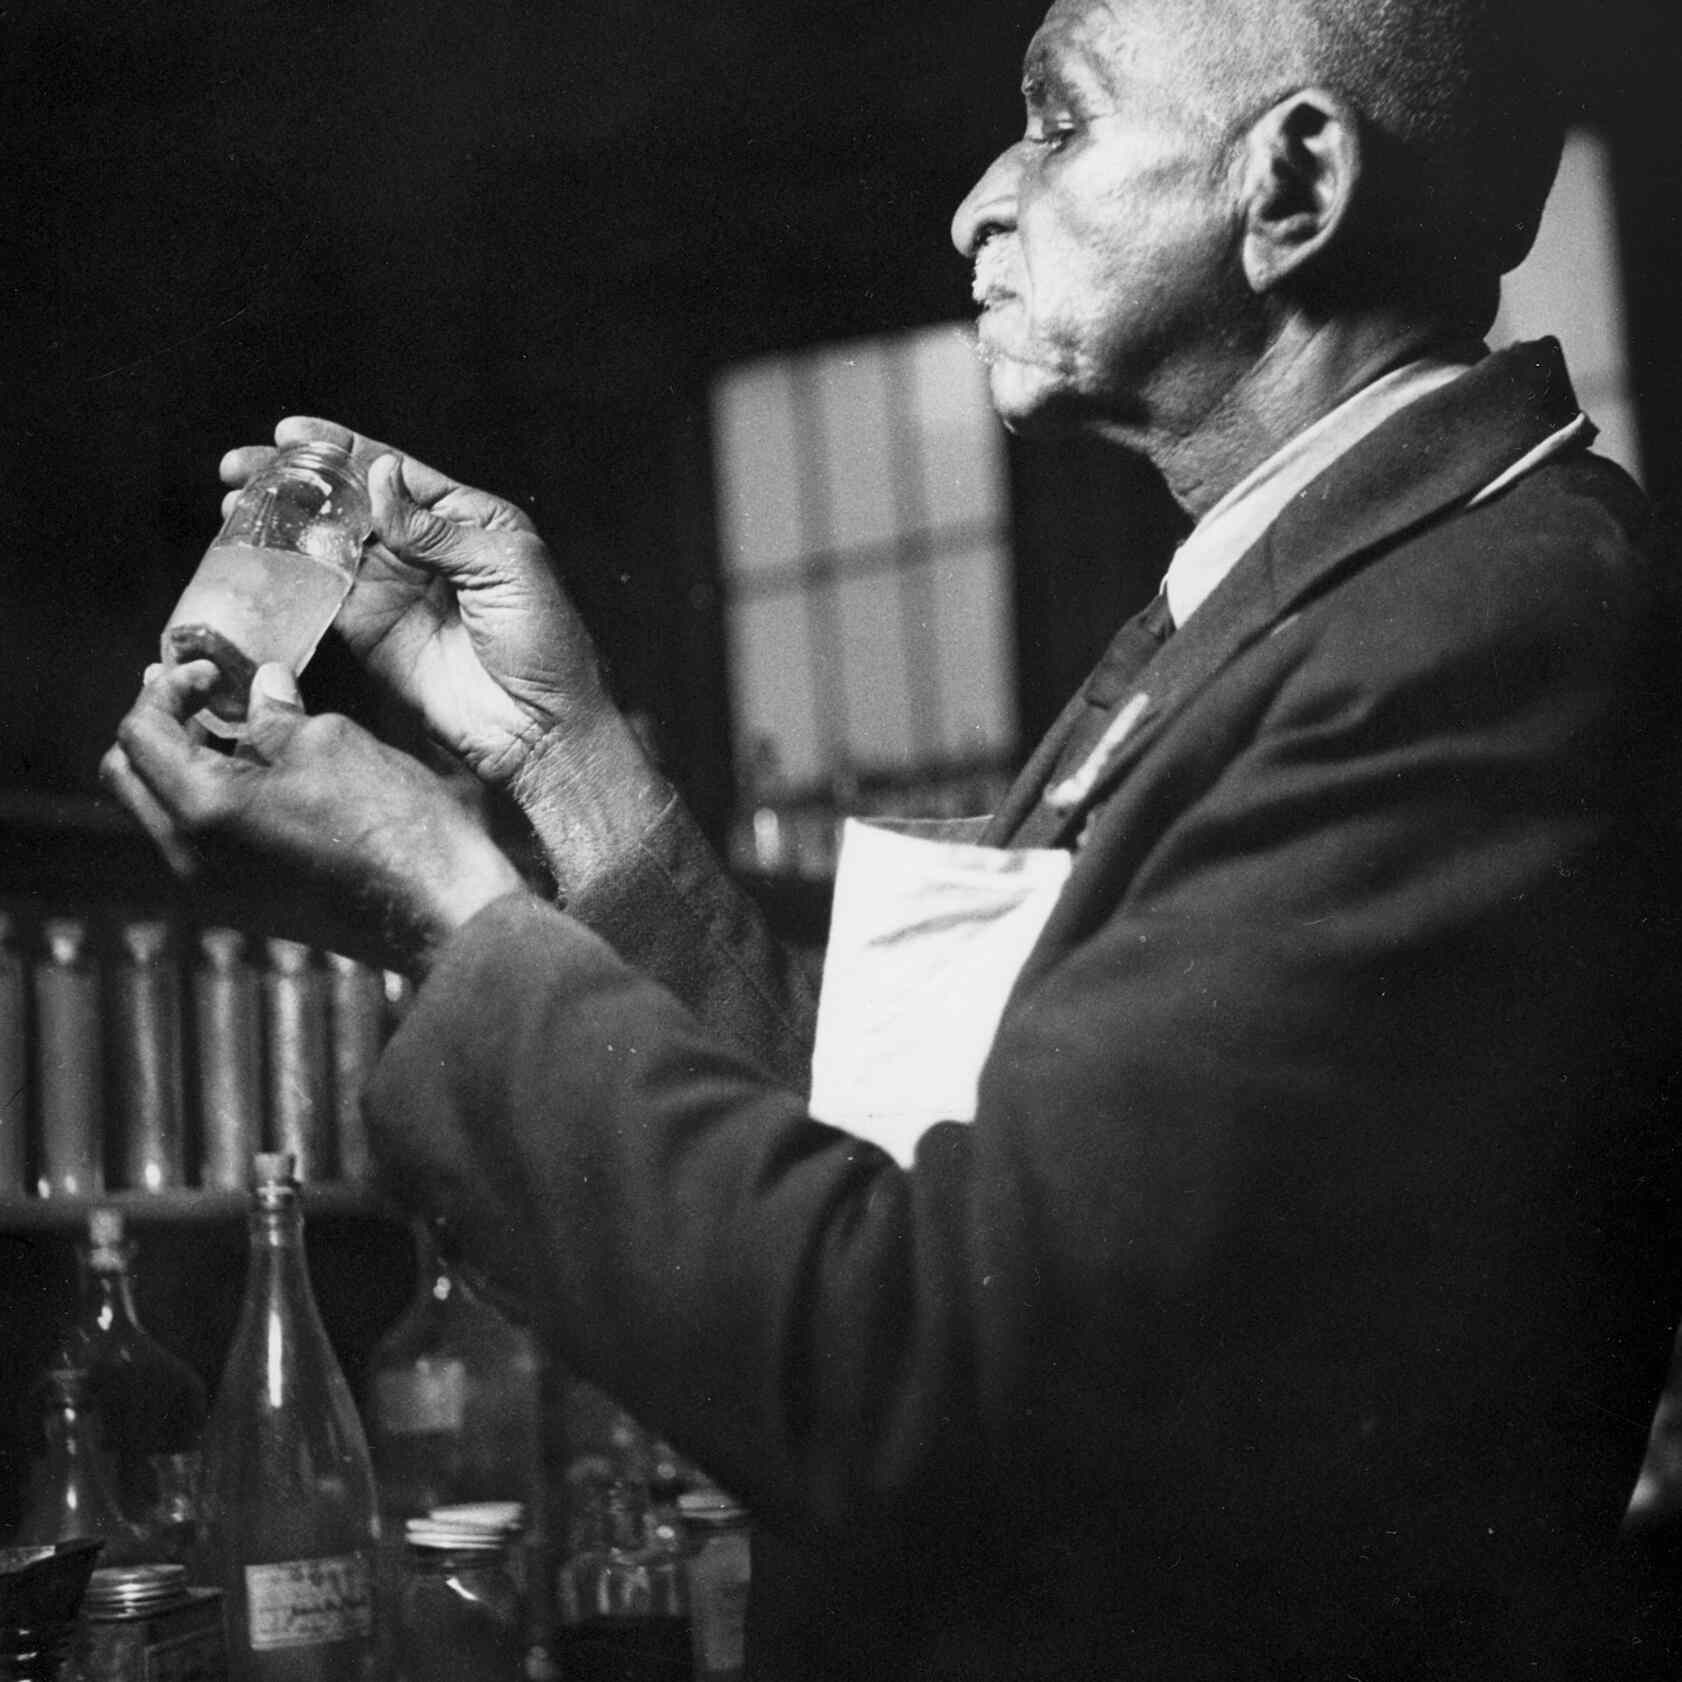 George Washington Carver at work at Tuskegee in September 1938.